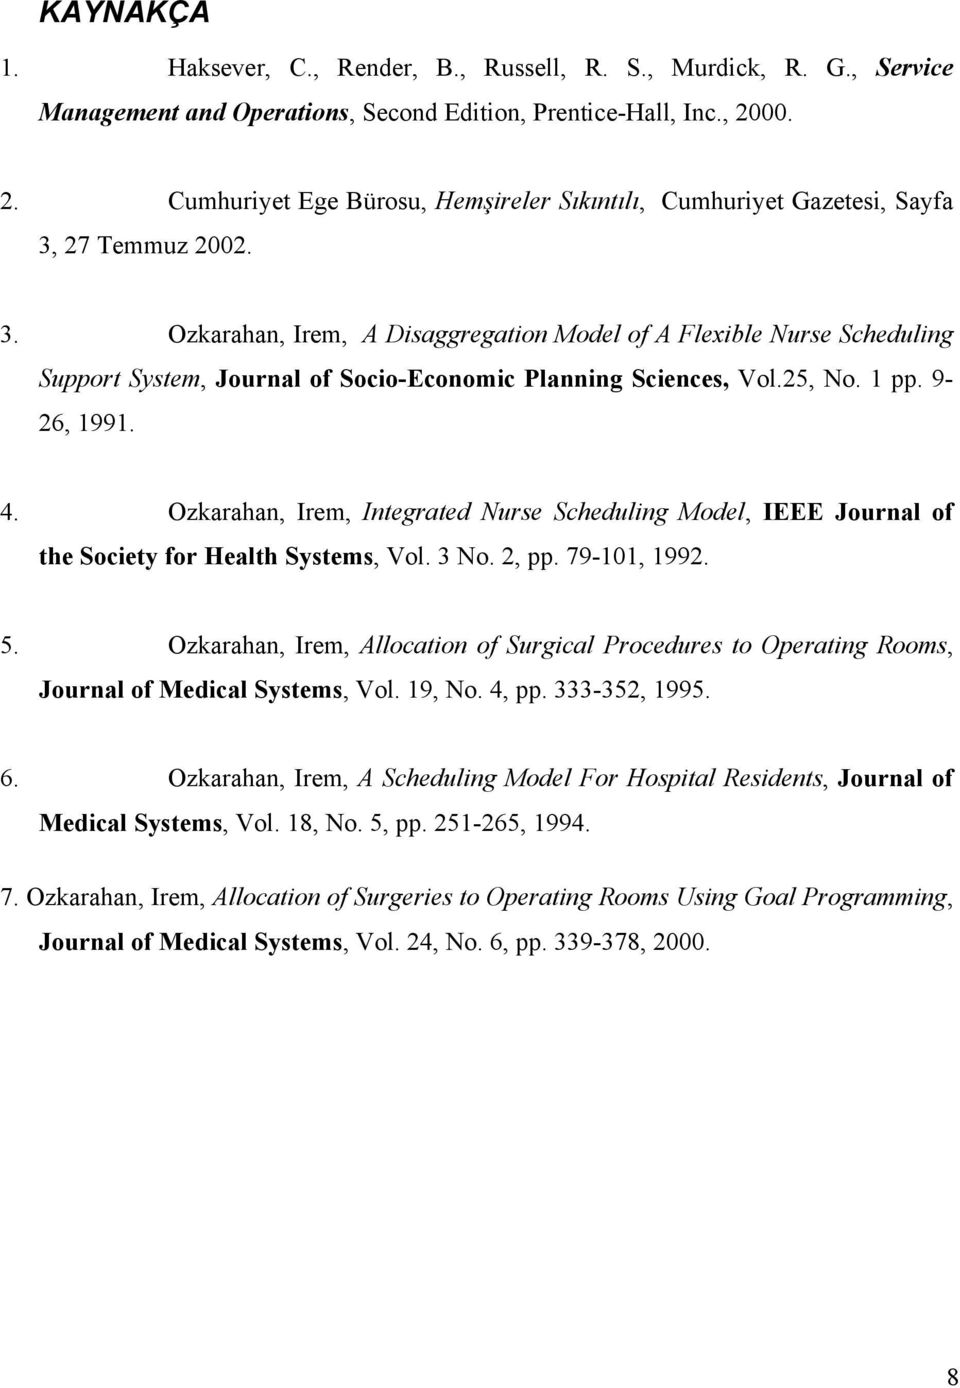 27 Temmuz 2002. 3. Ozkarahan, Irem, A Disaggregation Model of A Flexible Nurse Scheduling Support System, Journal of Socio-Economic Planning Sciences, Vol.25, No. 1 pp. 9-26, 1991. 4.